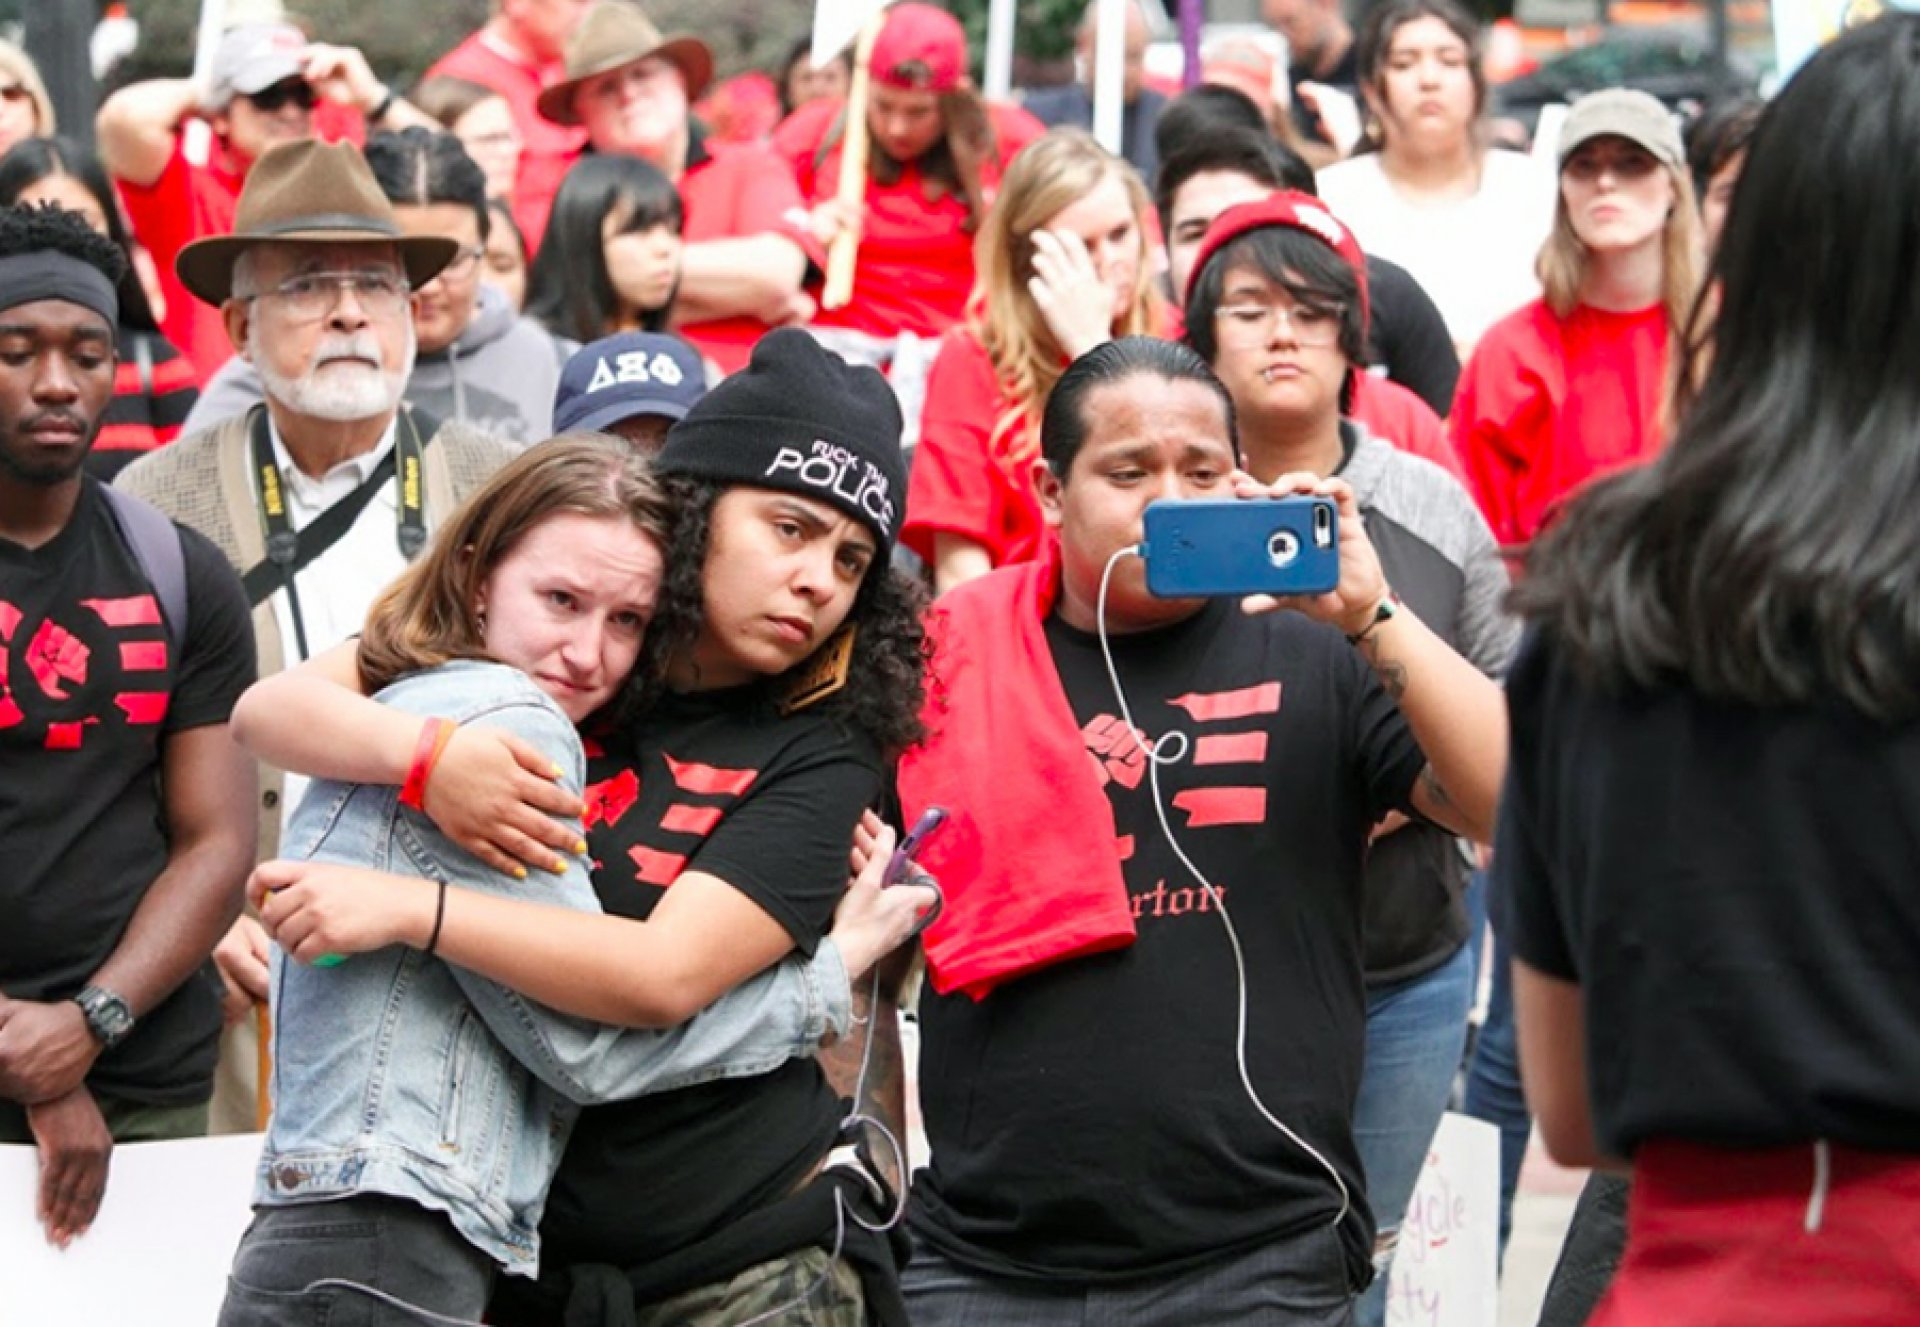 Students embrace during speech at the rally. Photo by Dajonea Robinson.